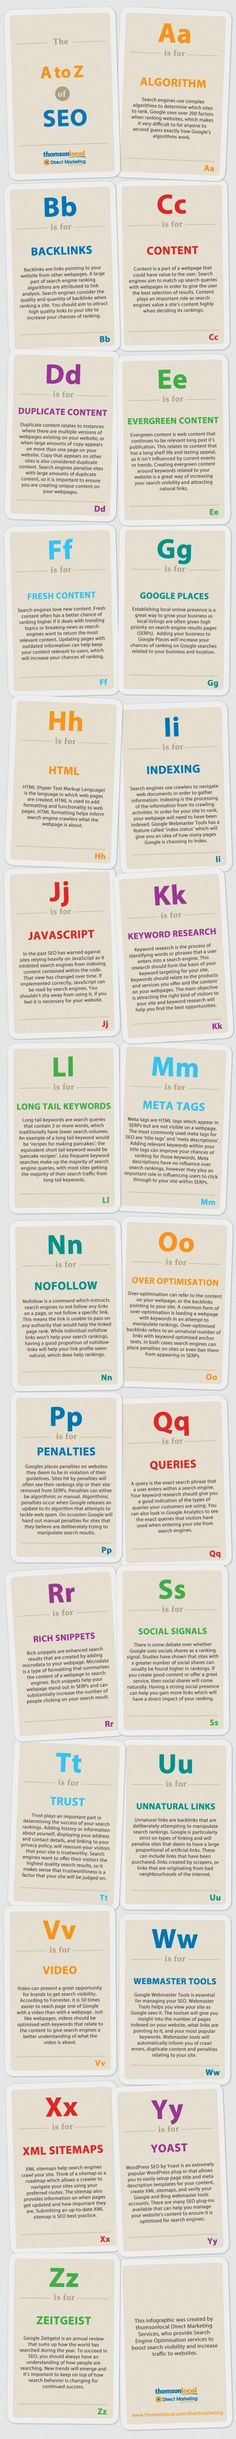 The A to Z of SEO #infografia #infographic #seo